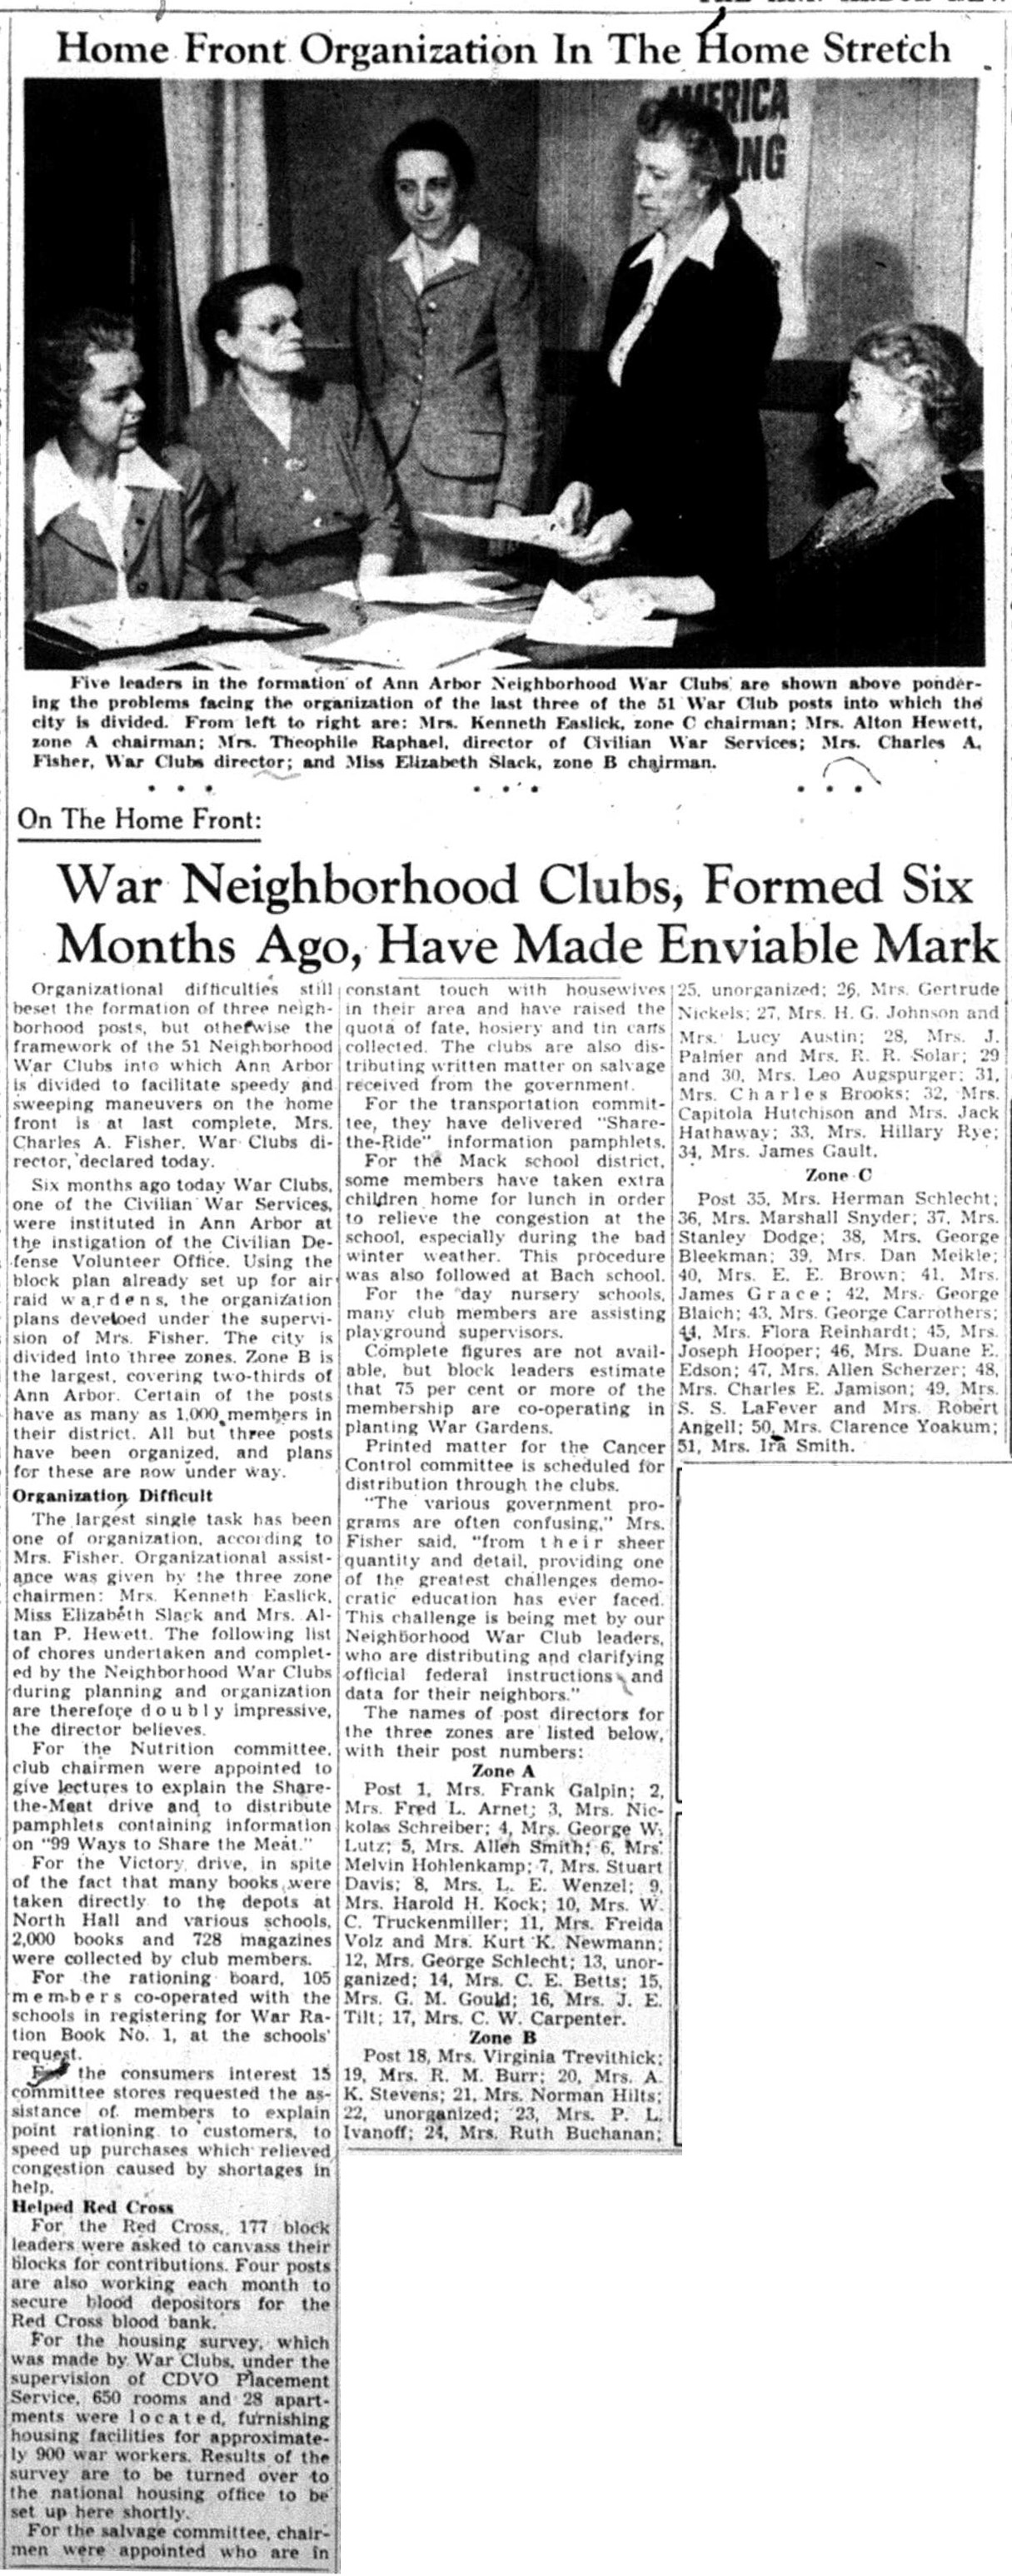 War Neighborhood Clubs, Formed Six Months Ago, Have Made Enviable Mark image